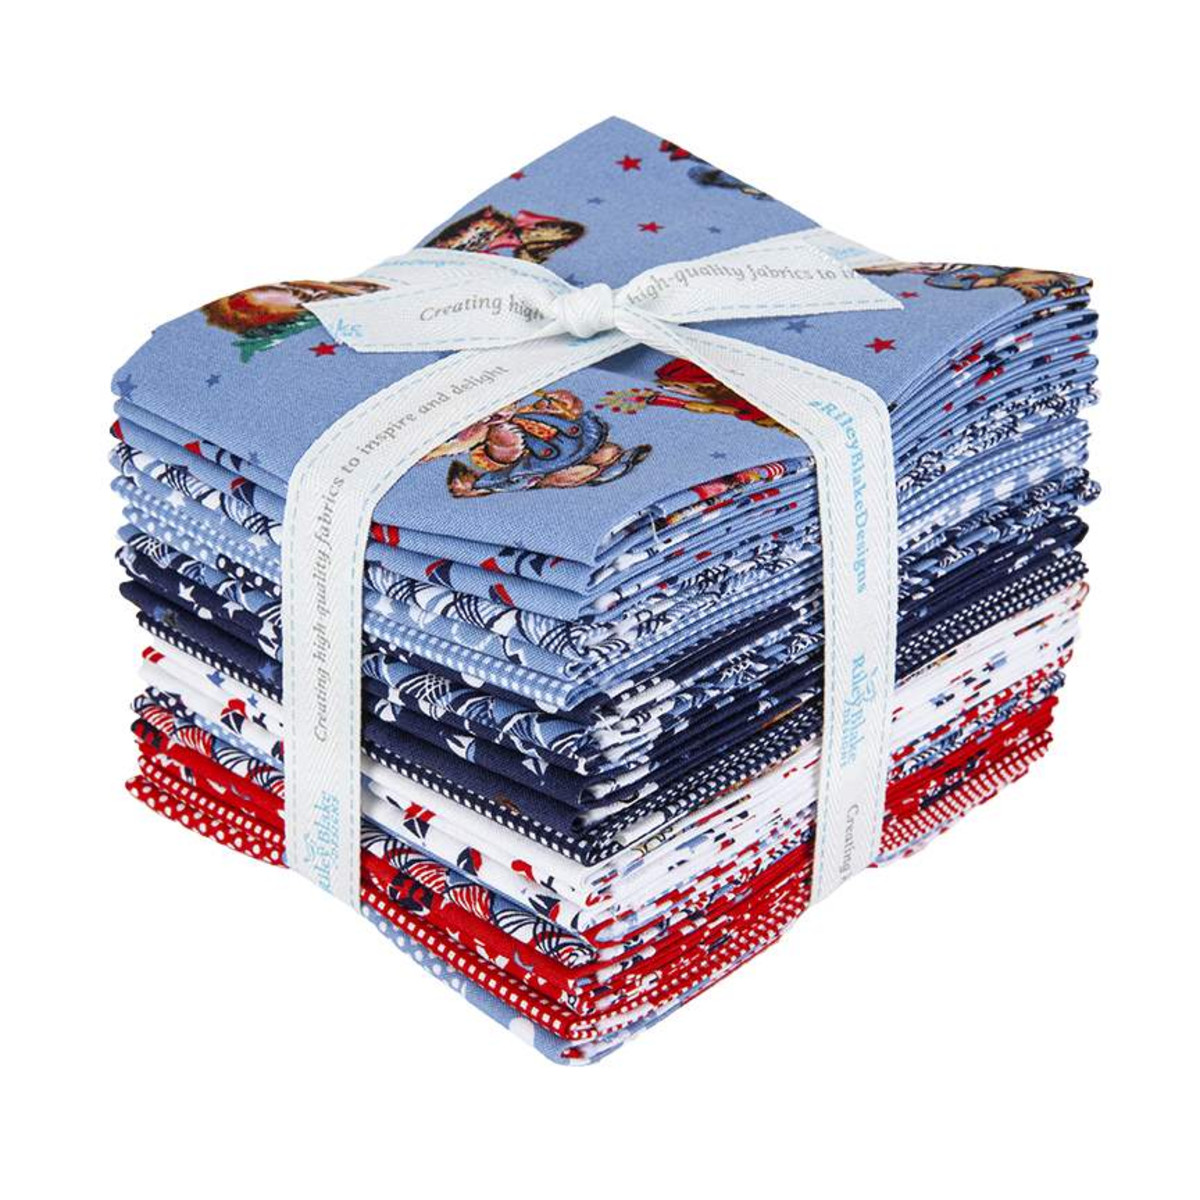 Riley Blake Fat Quarter Bundle - Set Sail America by Lindsay Wilkes